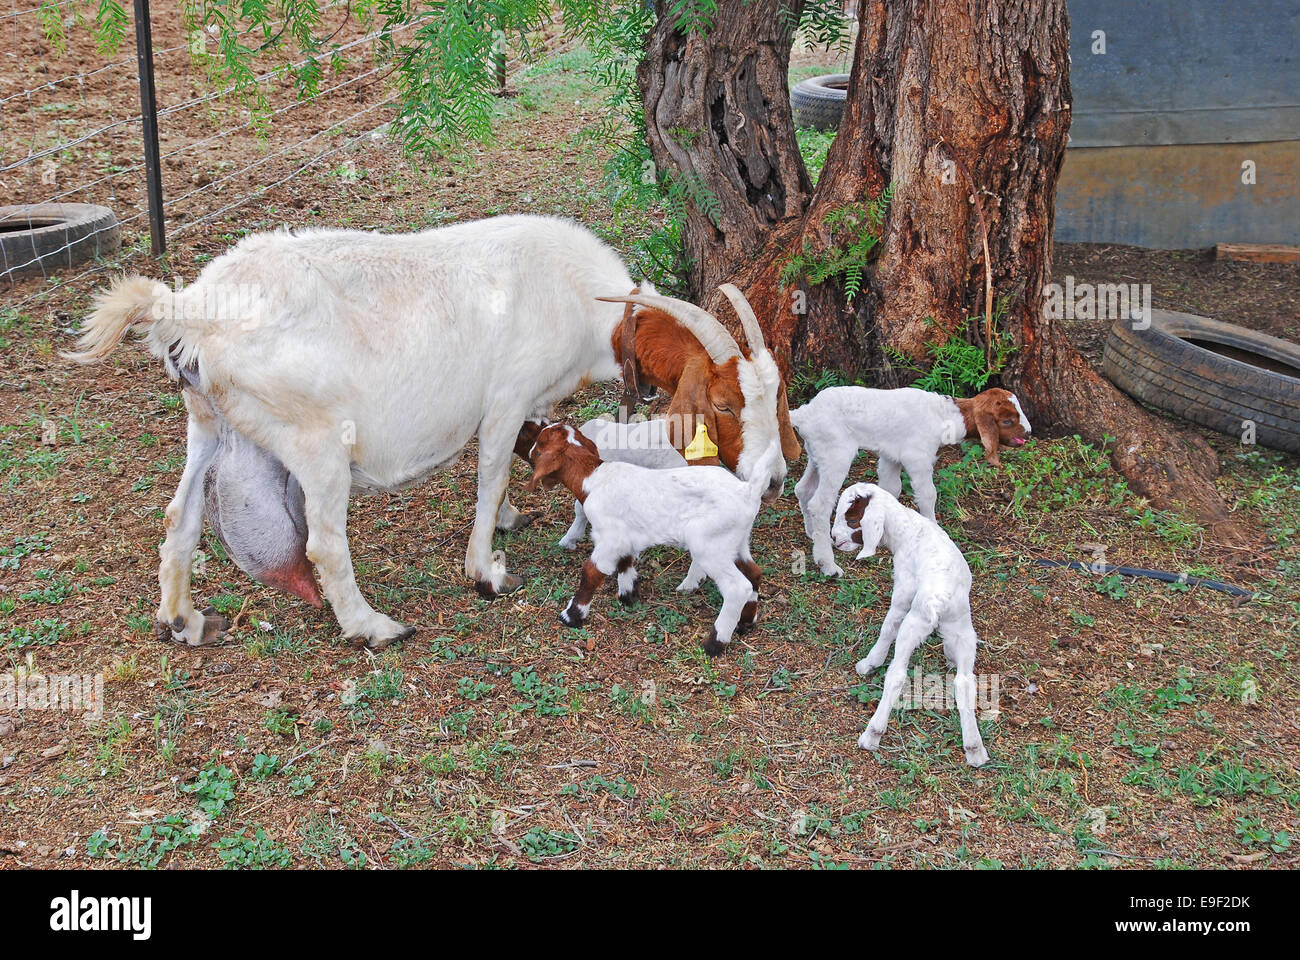 A  white nanny goat with four babies. - Stock Image